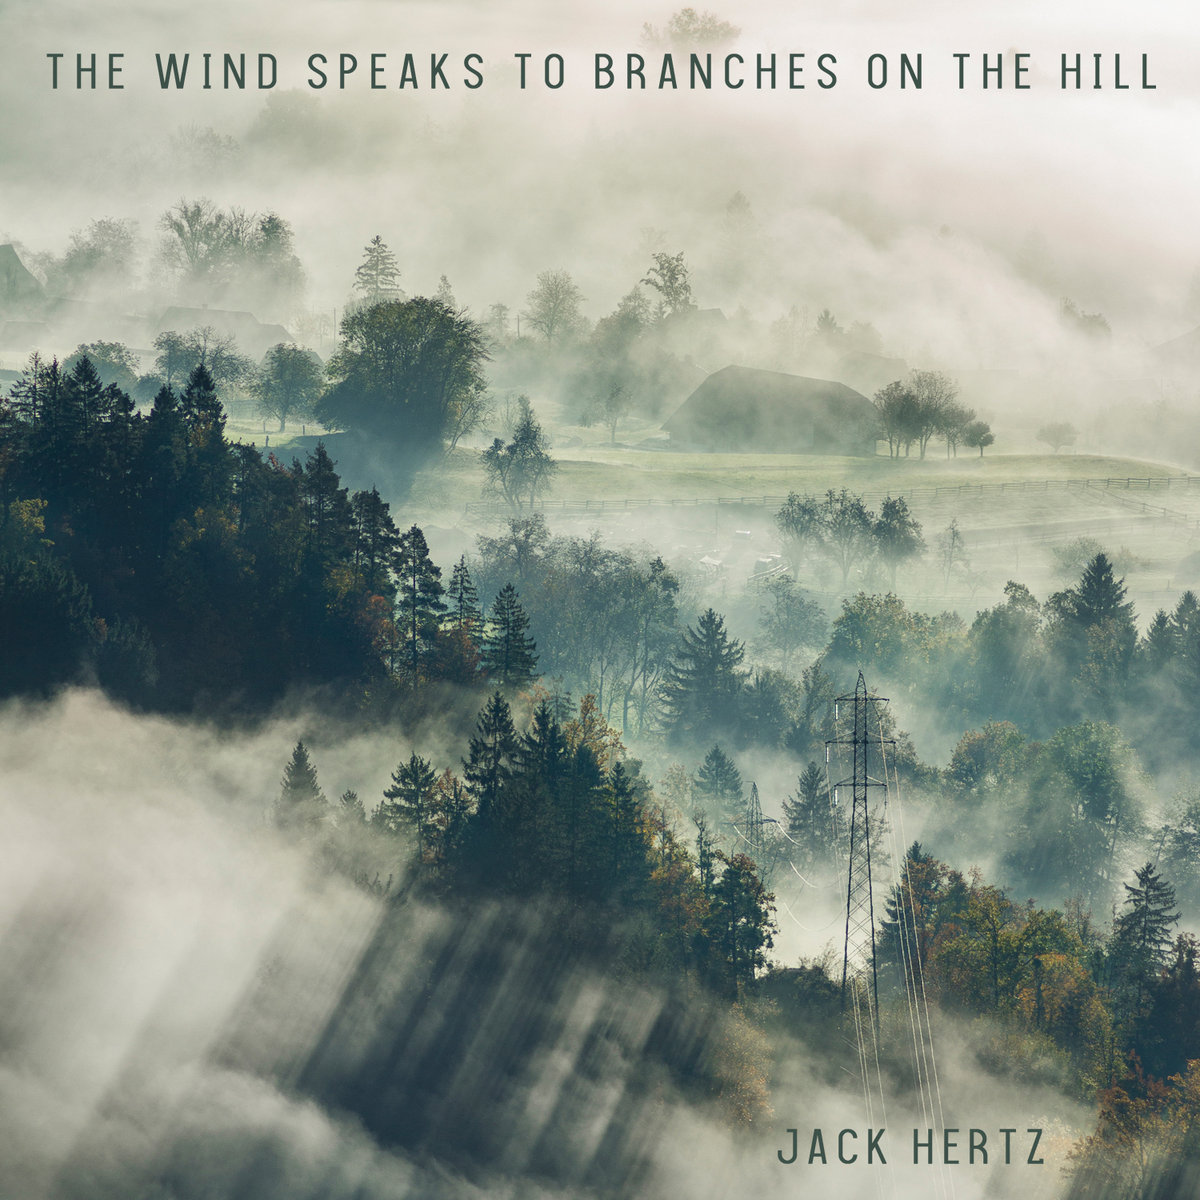 The Wind Speaks to Branches on the Hill by Jack Hertz